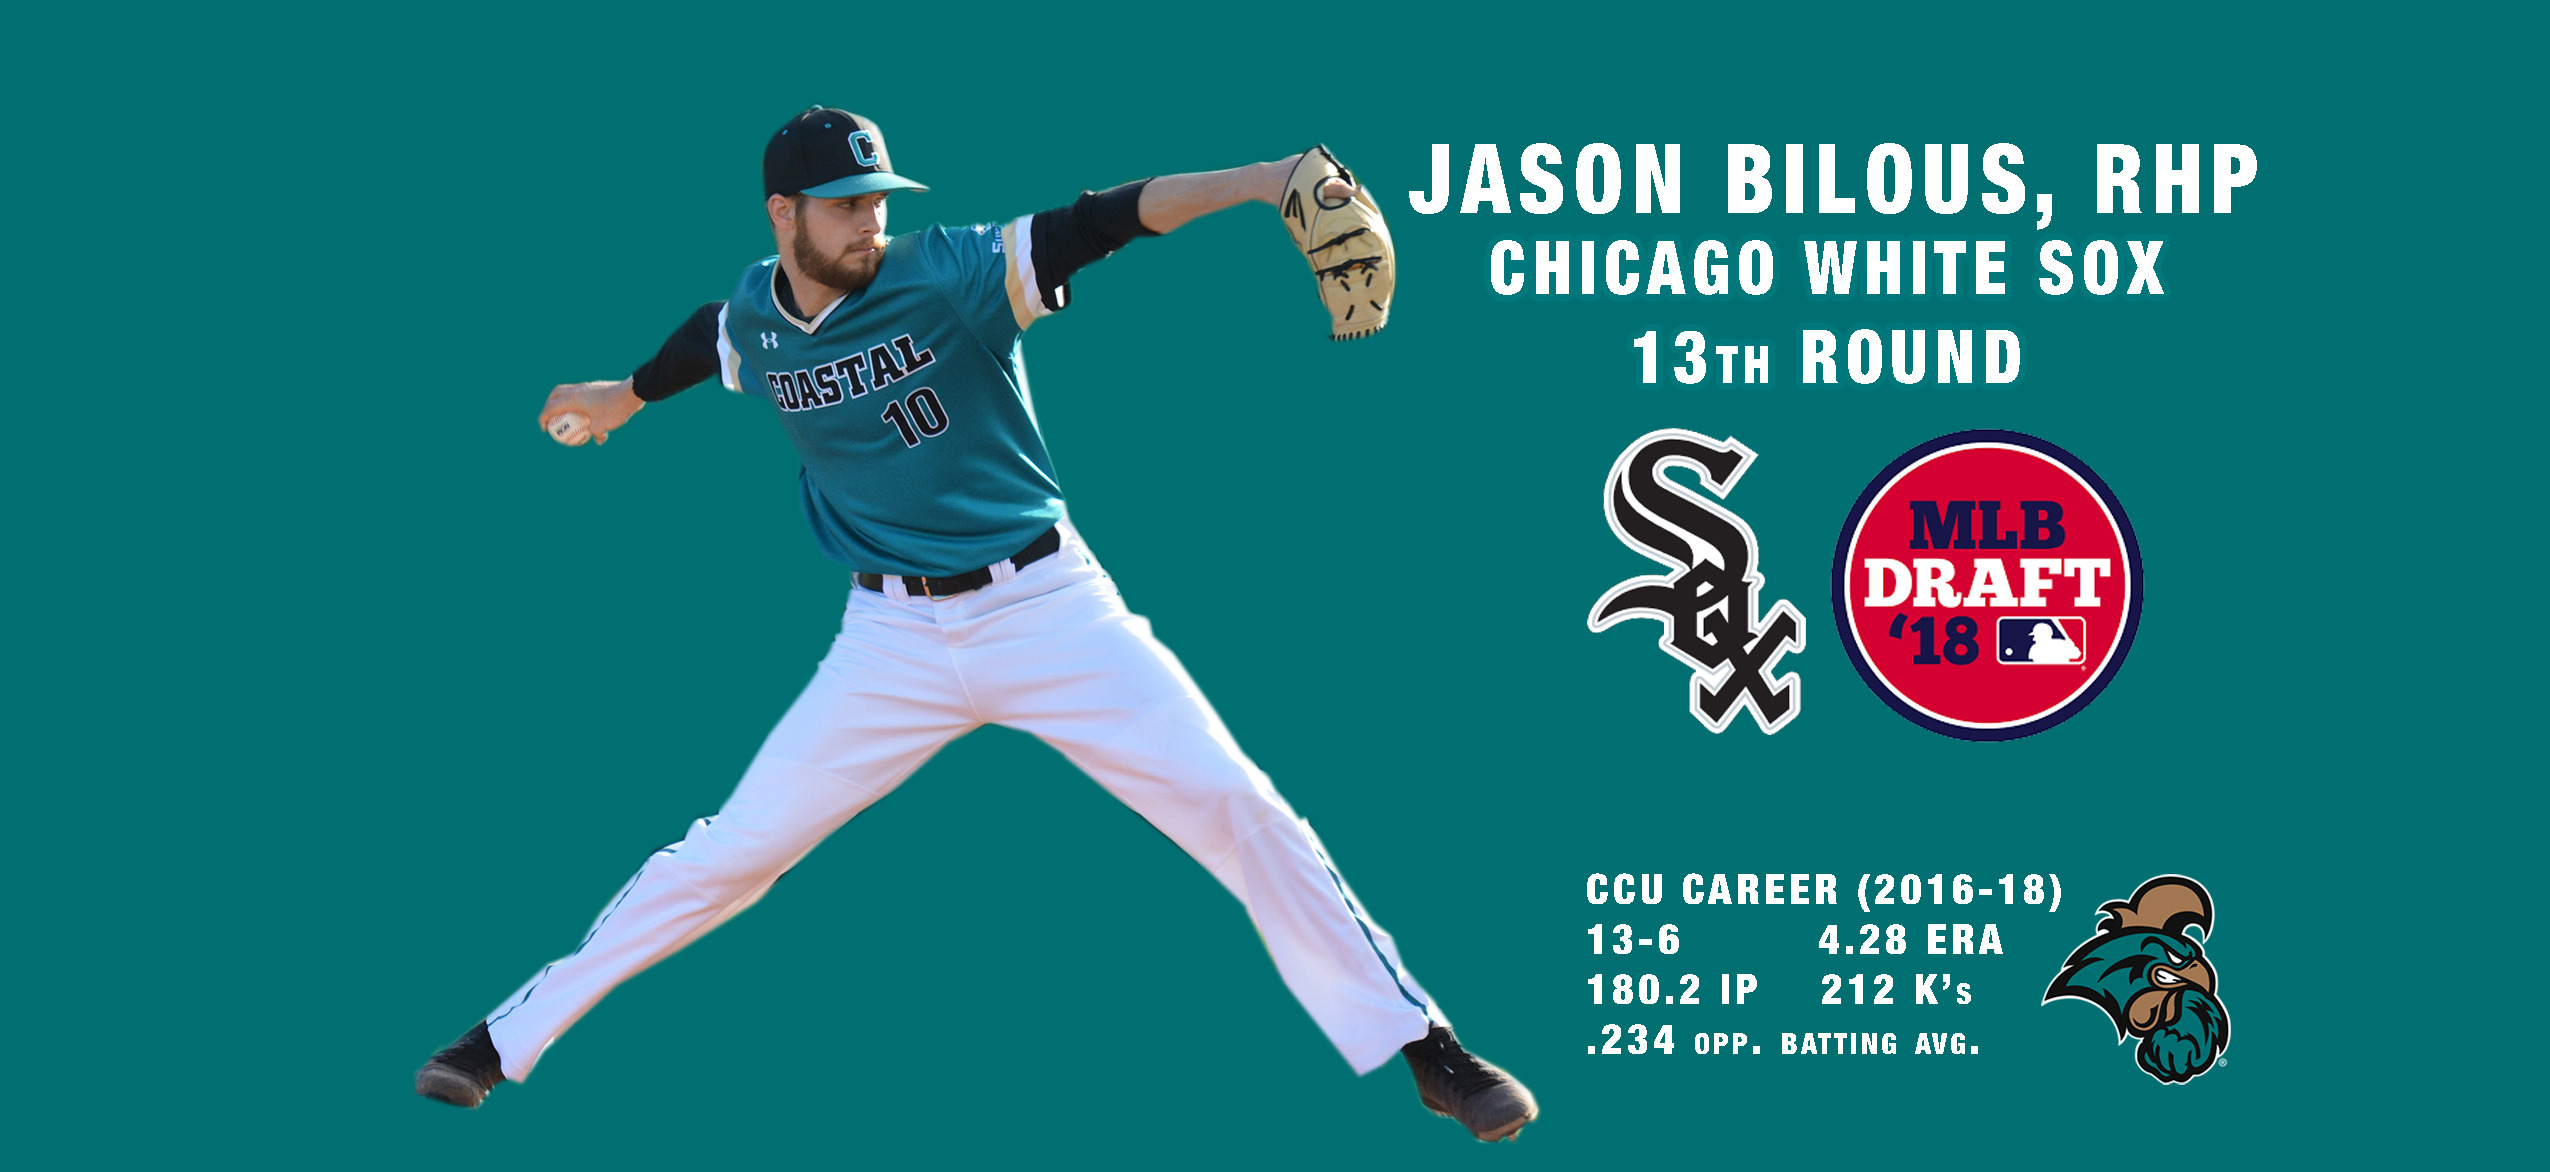 Jason Bilous Drafted in 13th Round by White Sox - Coastal